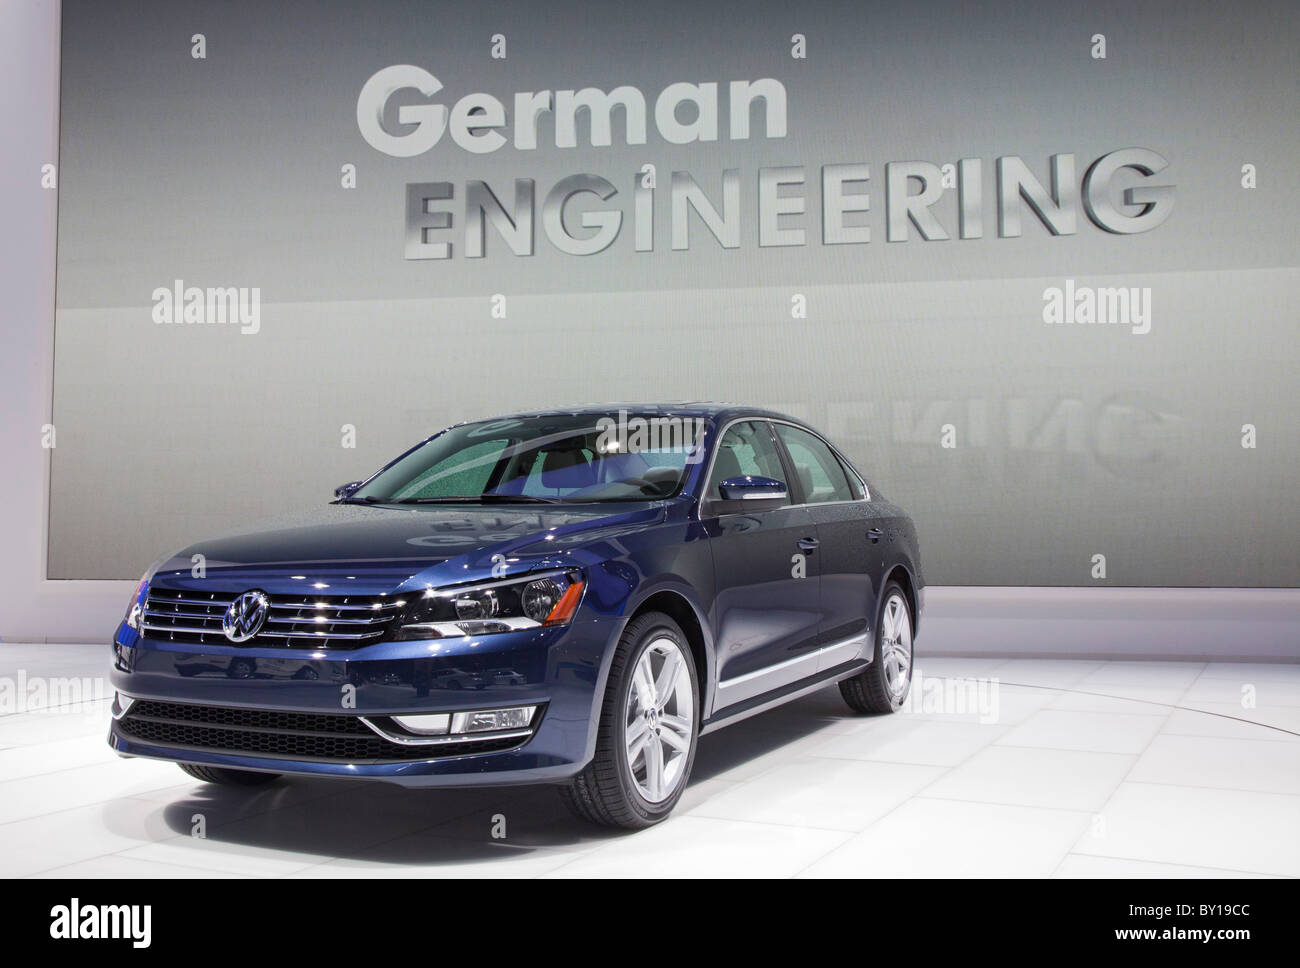 Detroit, Michigan - The 2011 Volkswagen Passat on display at the North American International Auto Show. - Stock Image